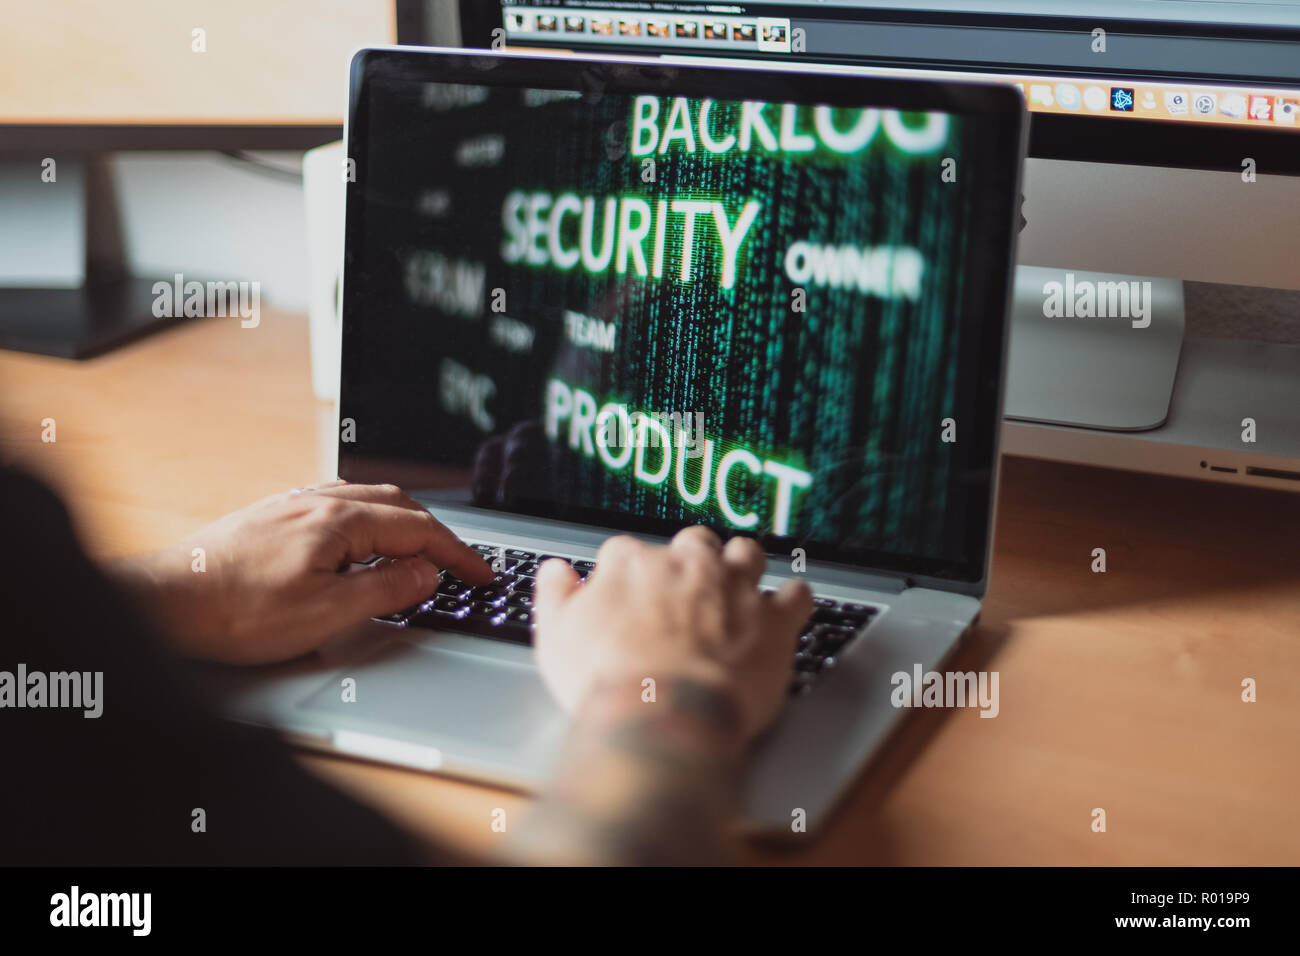 Man working on laptop for agile scrum process security concept, wooden table - Stock Image